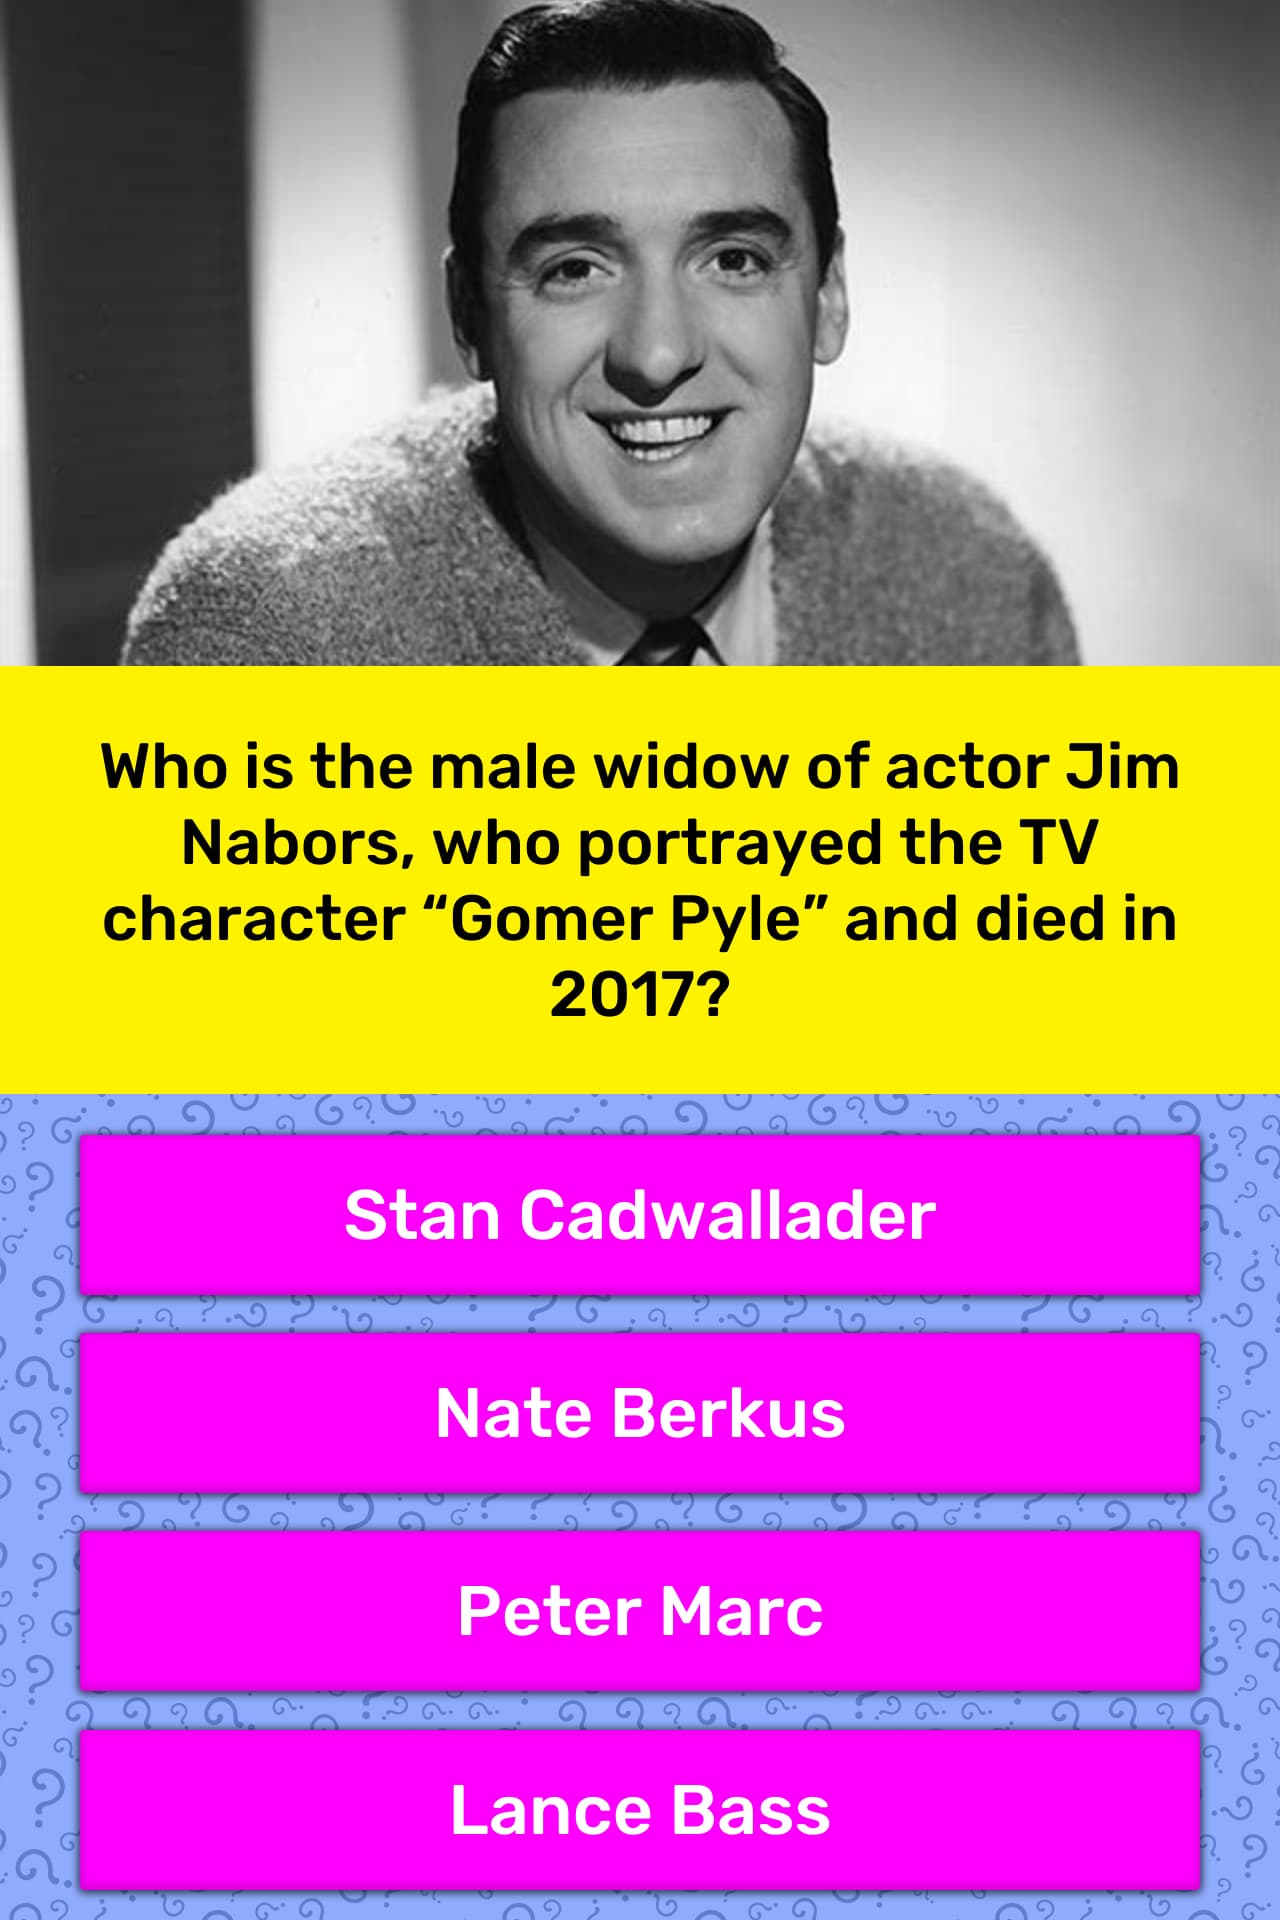 Who Is The Male Widow Of Actor Jim Trivia Answers Quizzclub In december of the year 2013, he and jim got married. who is the male widow of actor jim